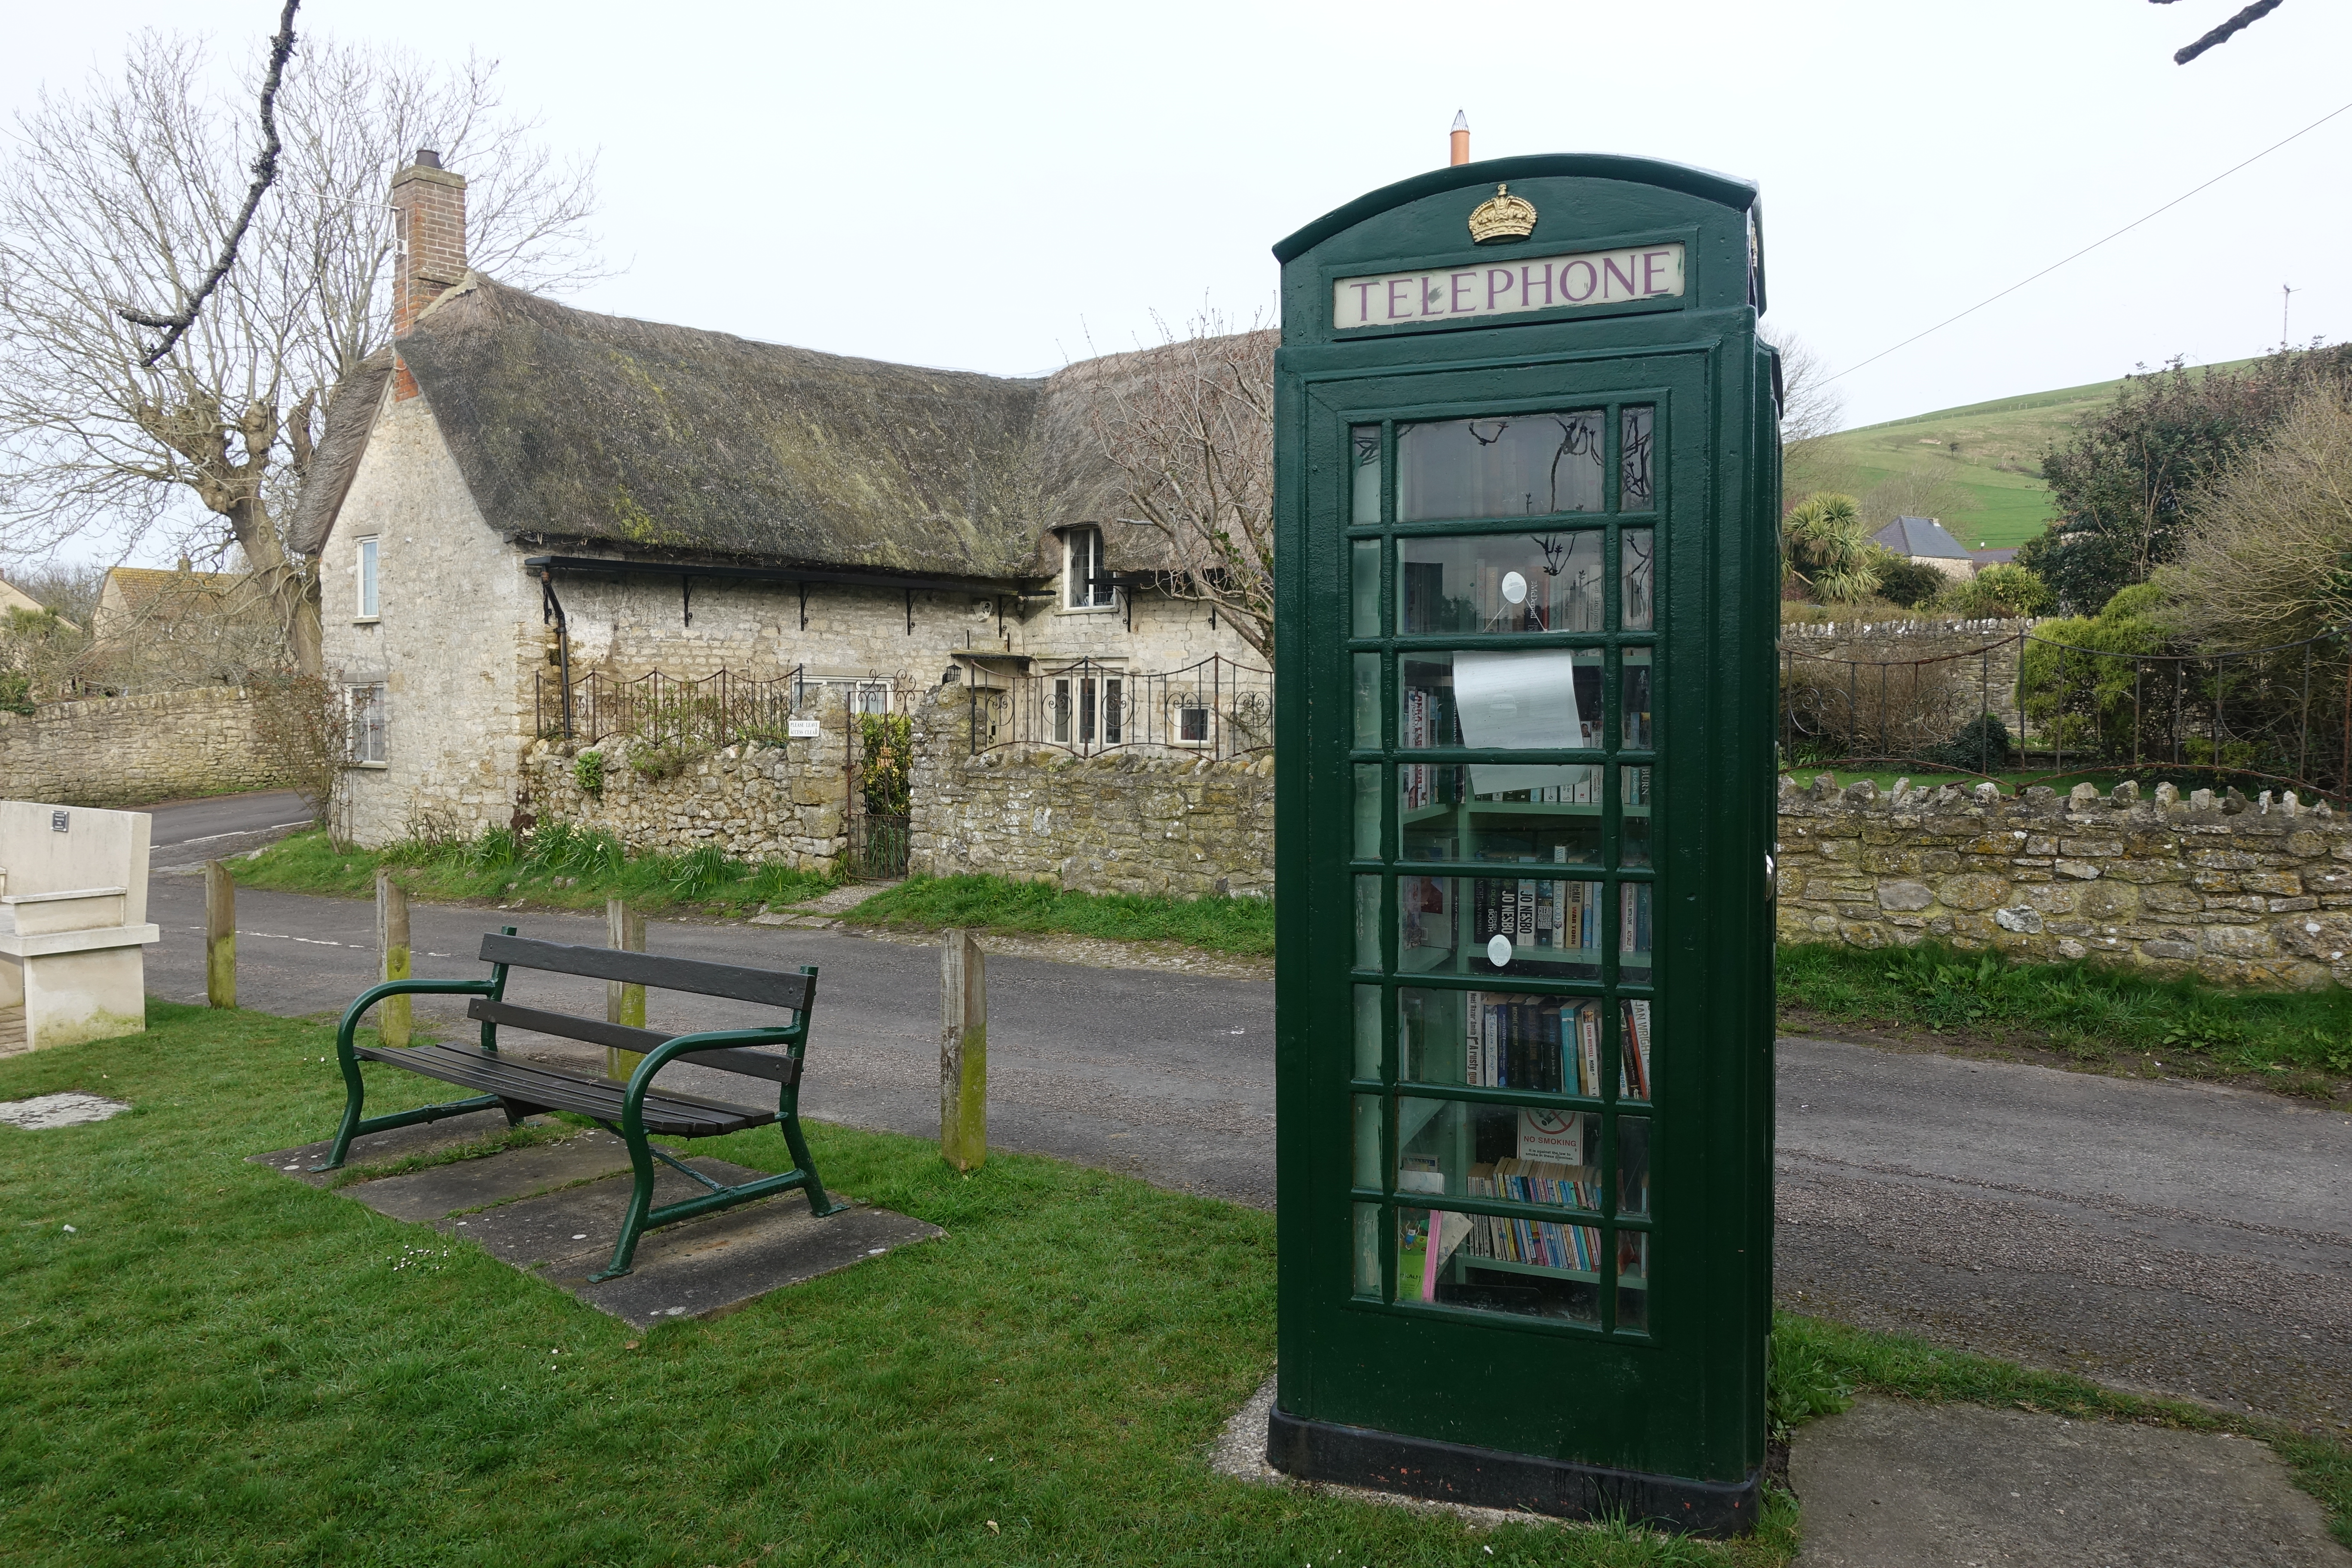 K6 in Dorset. Now used as a book exchange